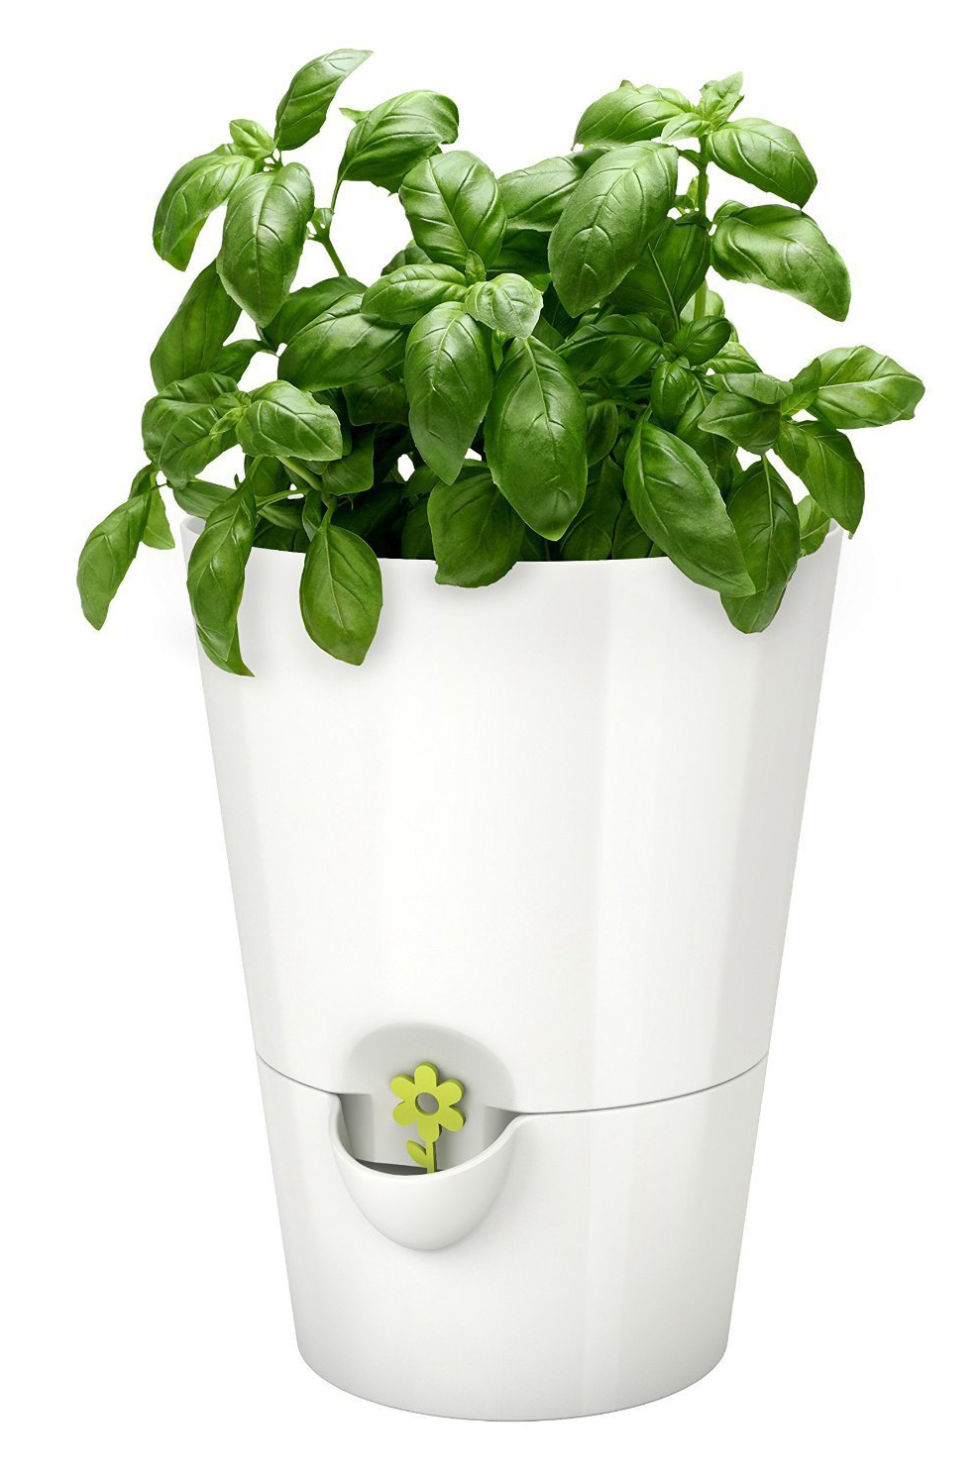 herb indoor planter growbottle indoor herb garden kit wine b